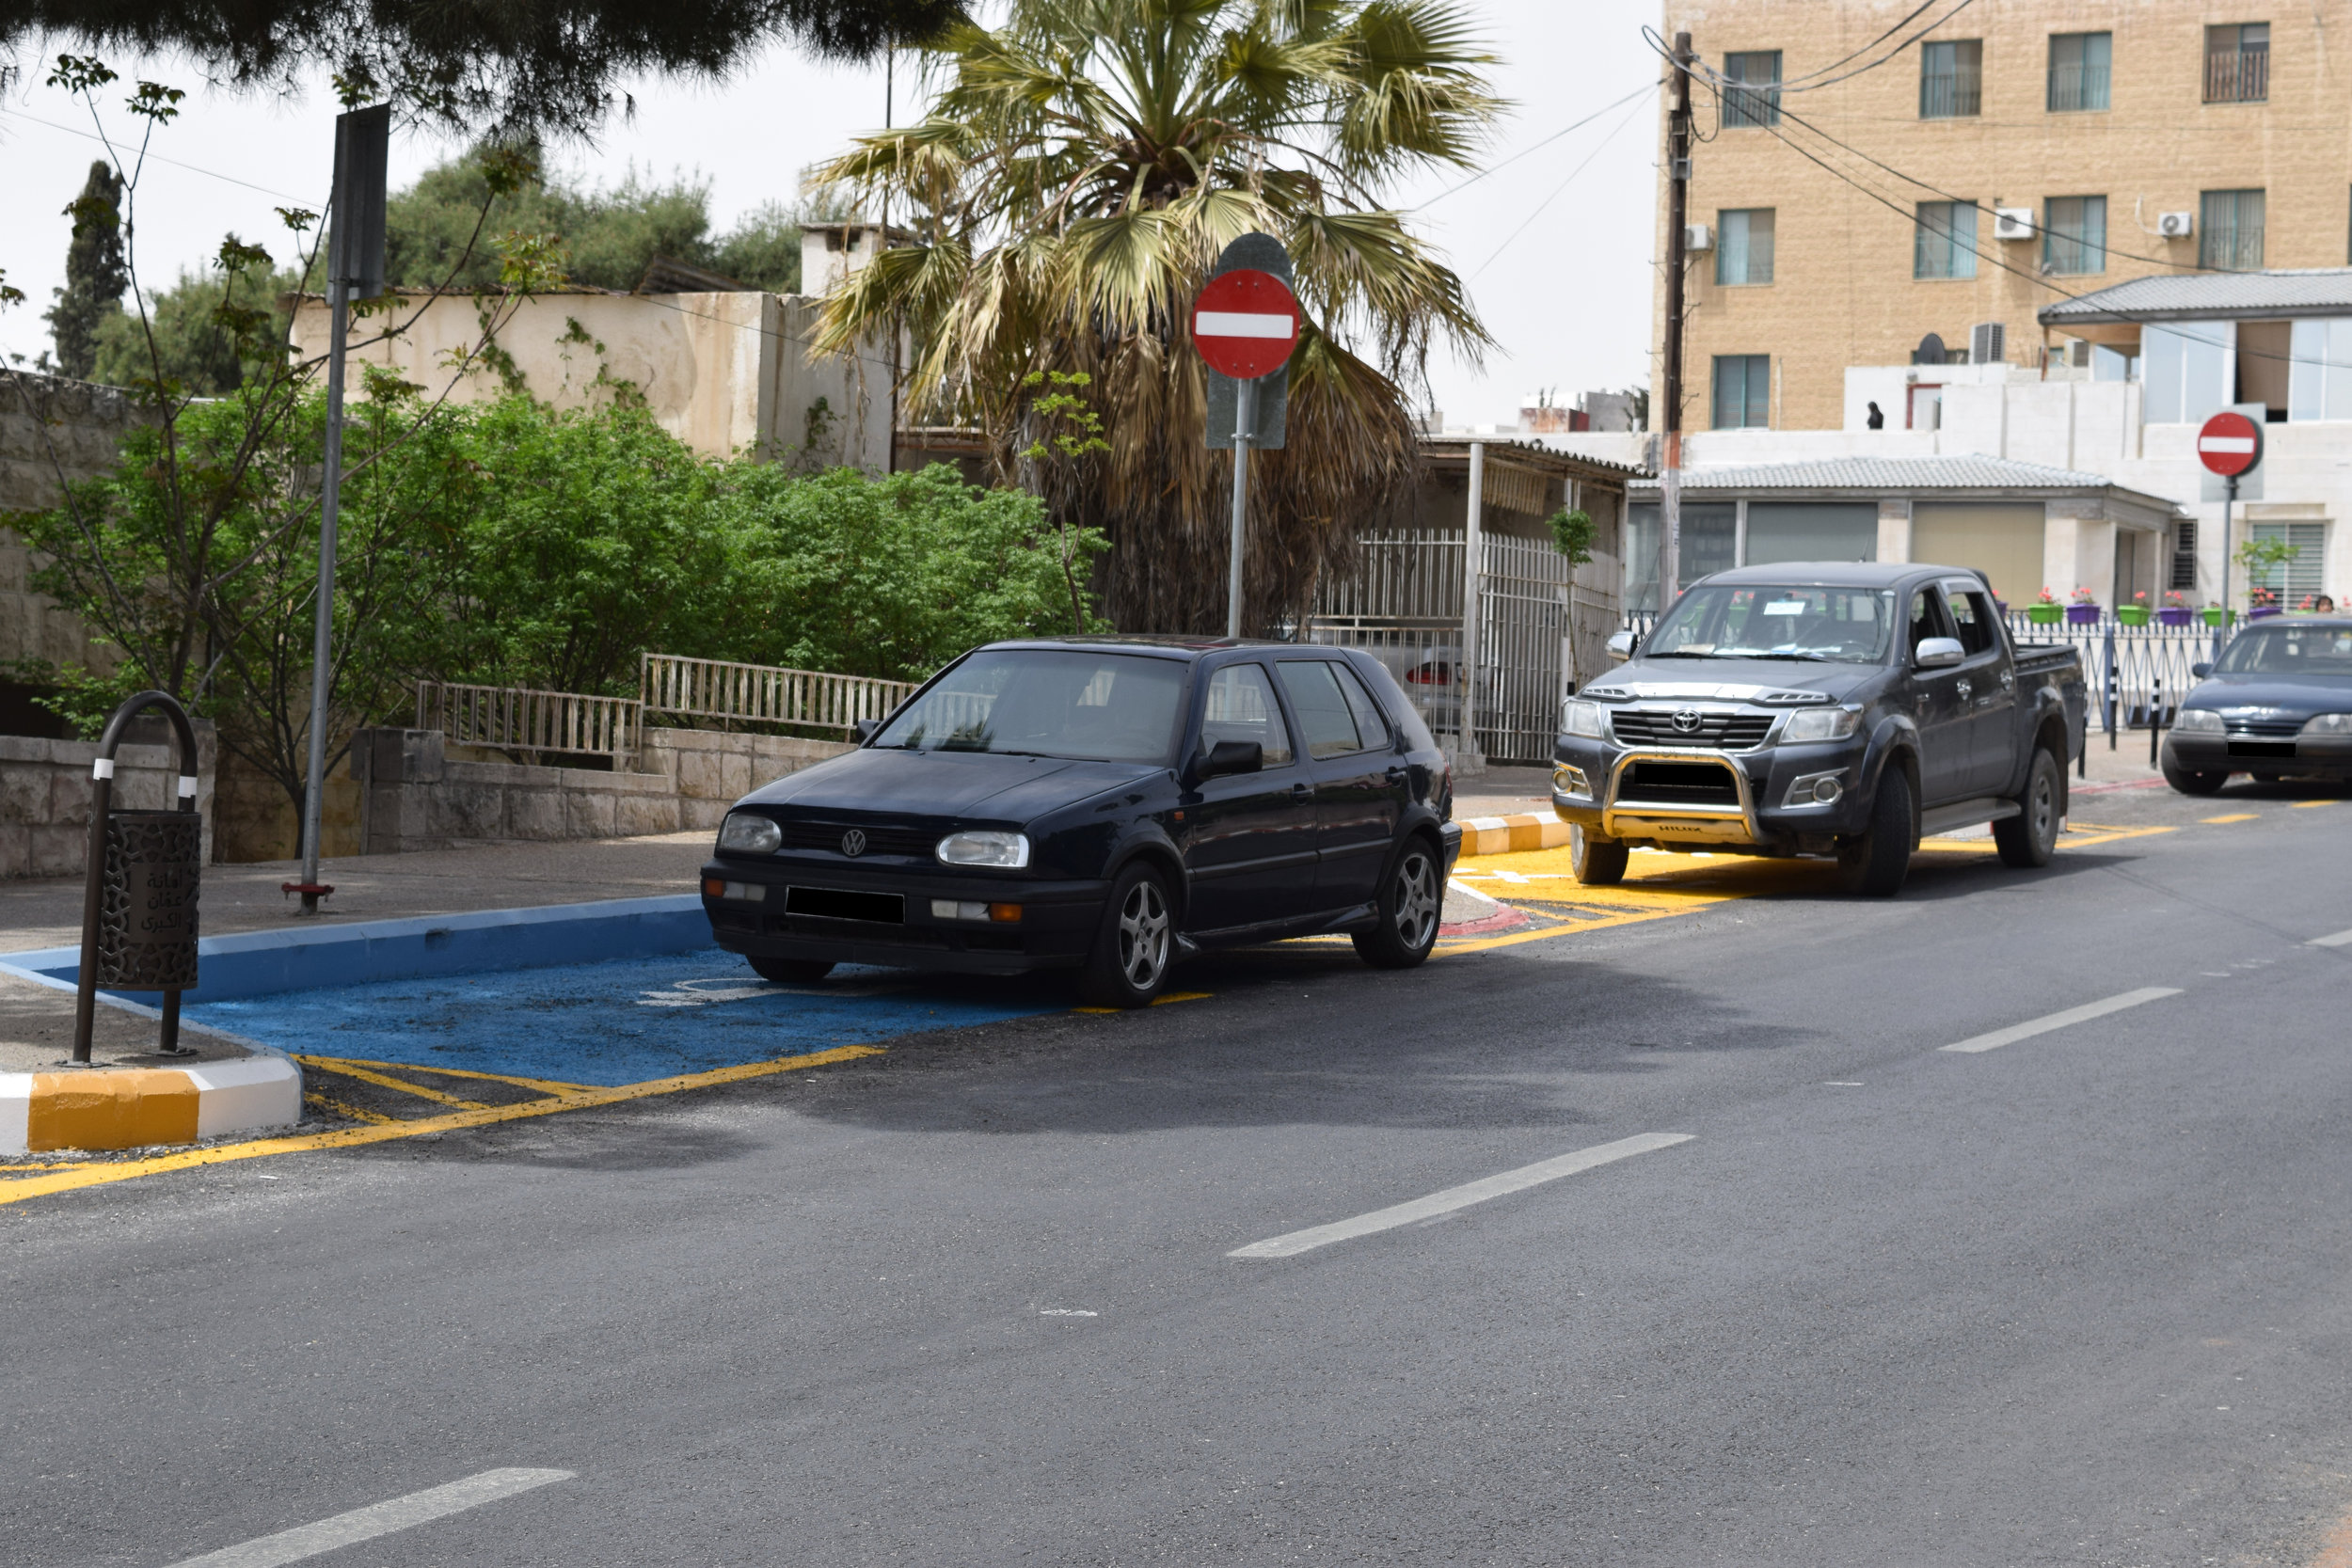 Cars illegally parked in the handicapped and taxi parking zones.